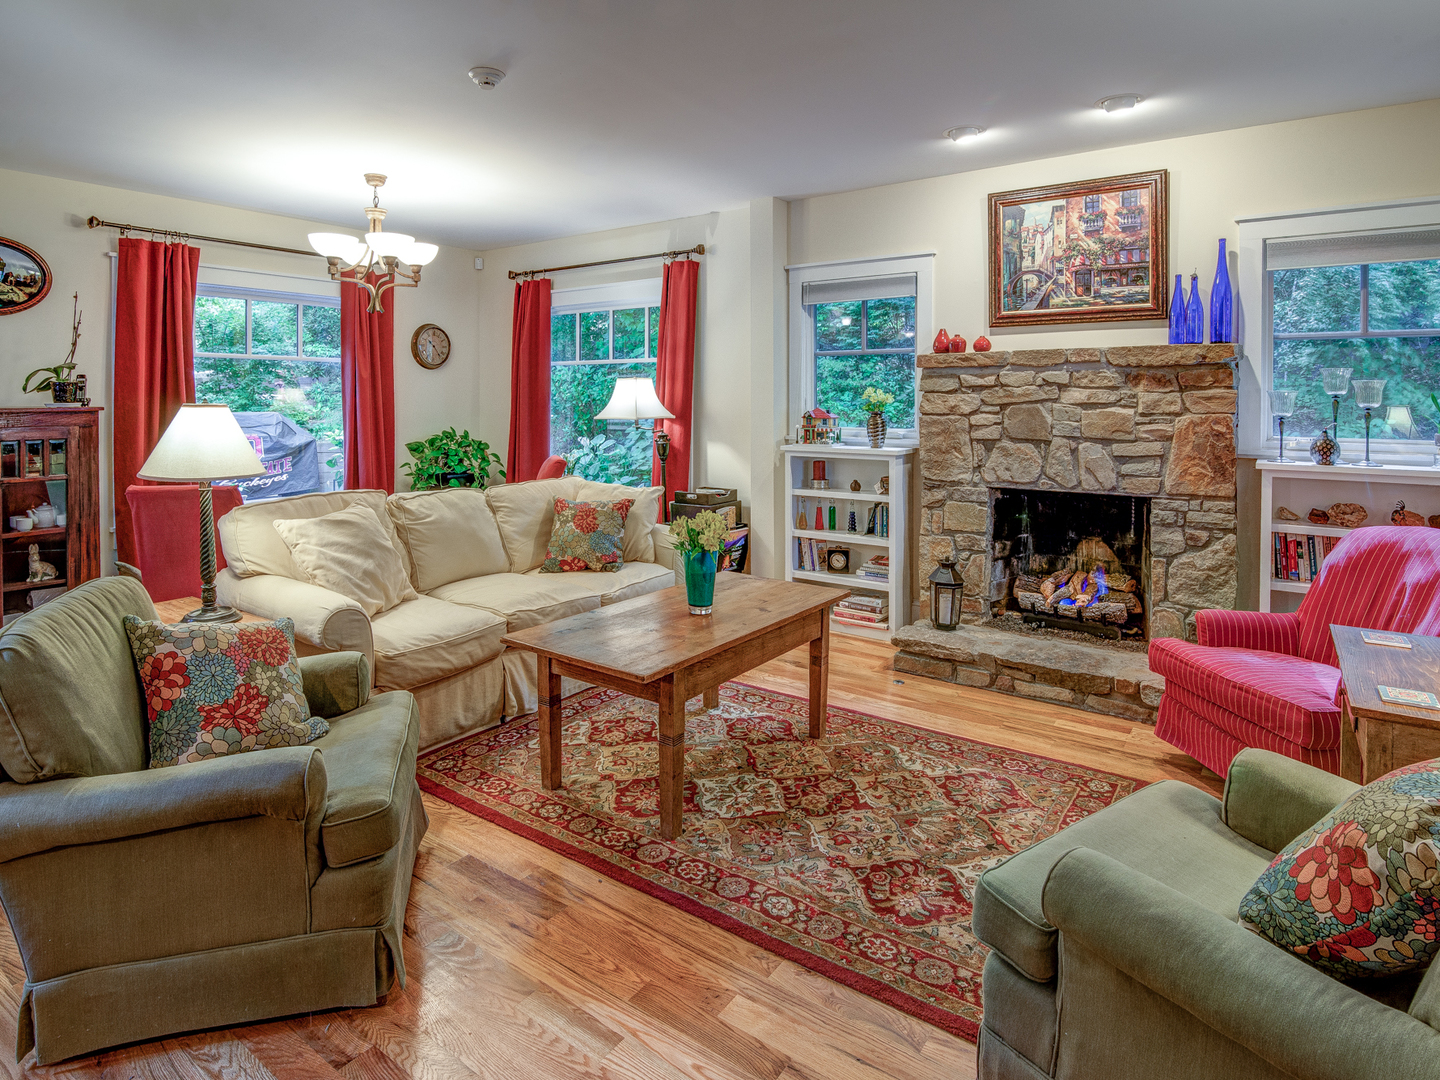 A living room filled with furniture and a fire place at Arbor House of Black Mountain Bed and Breakfast.